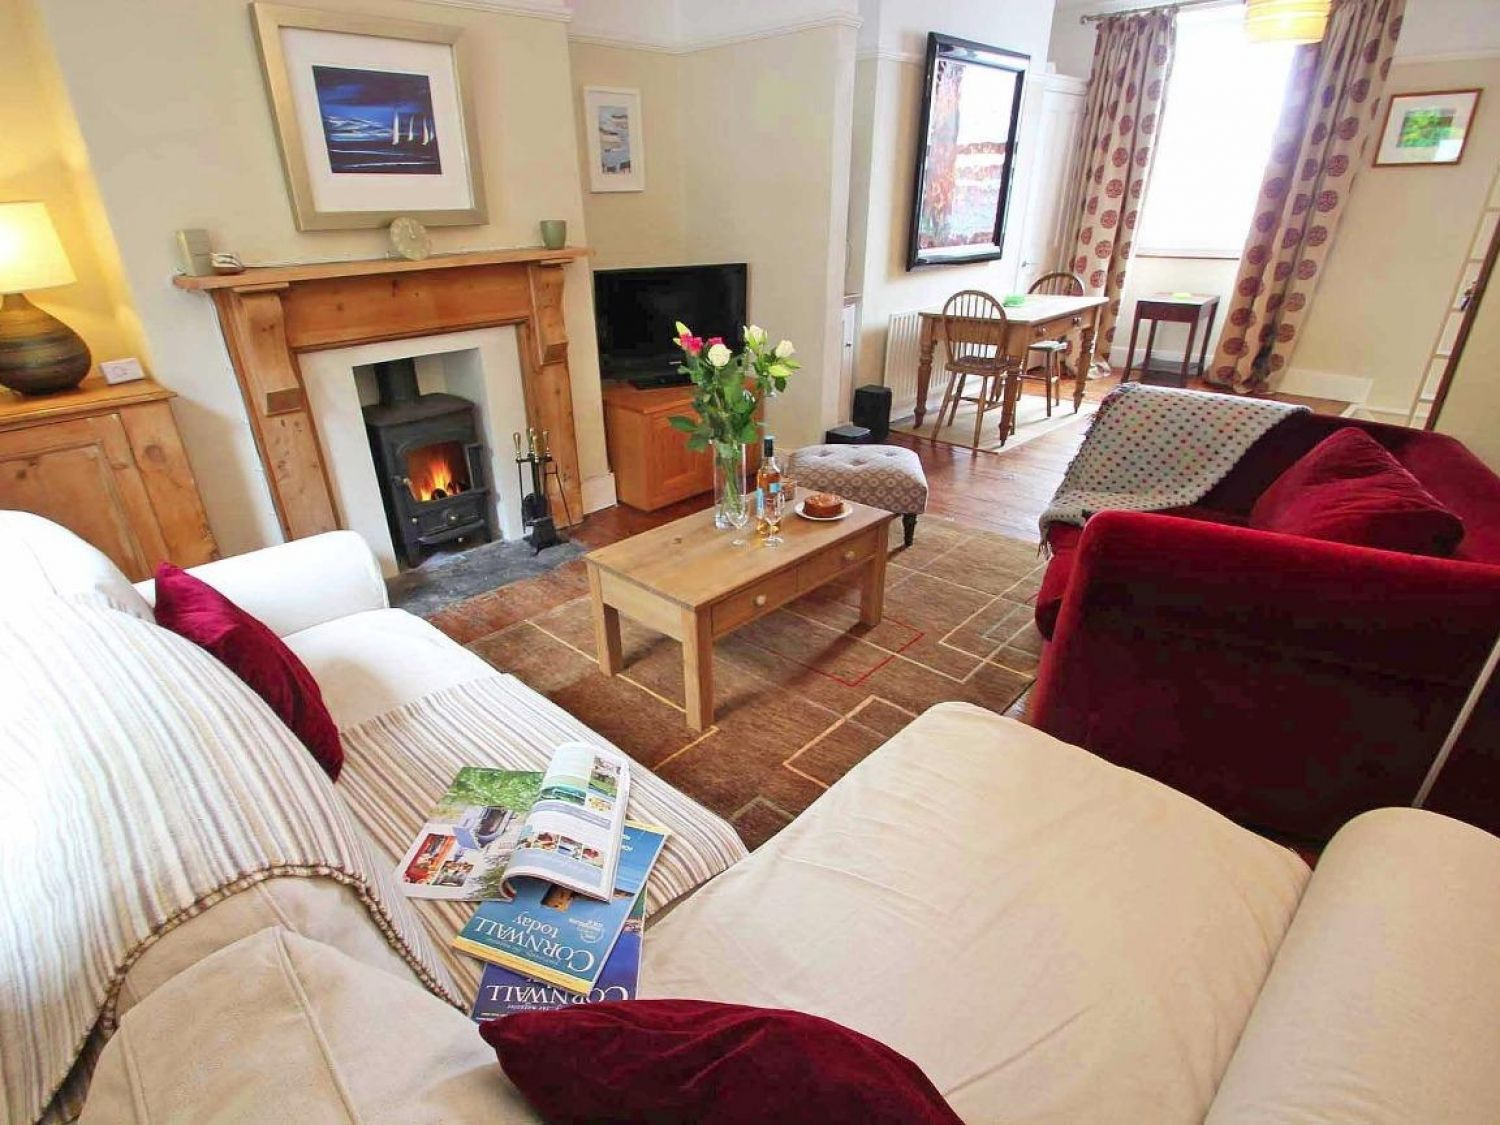 Neptune in Falmouth - sleeps 4 people